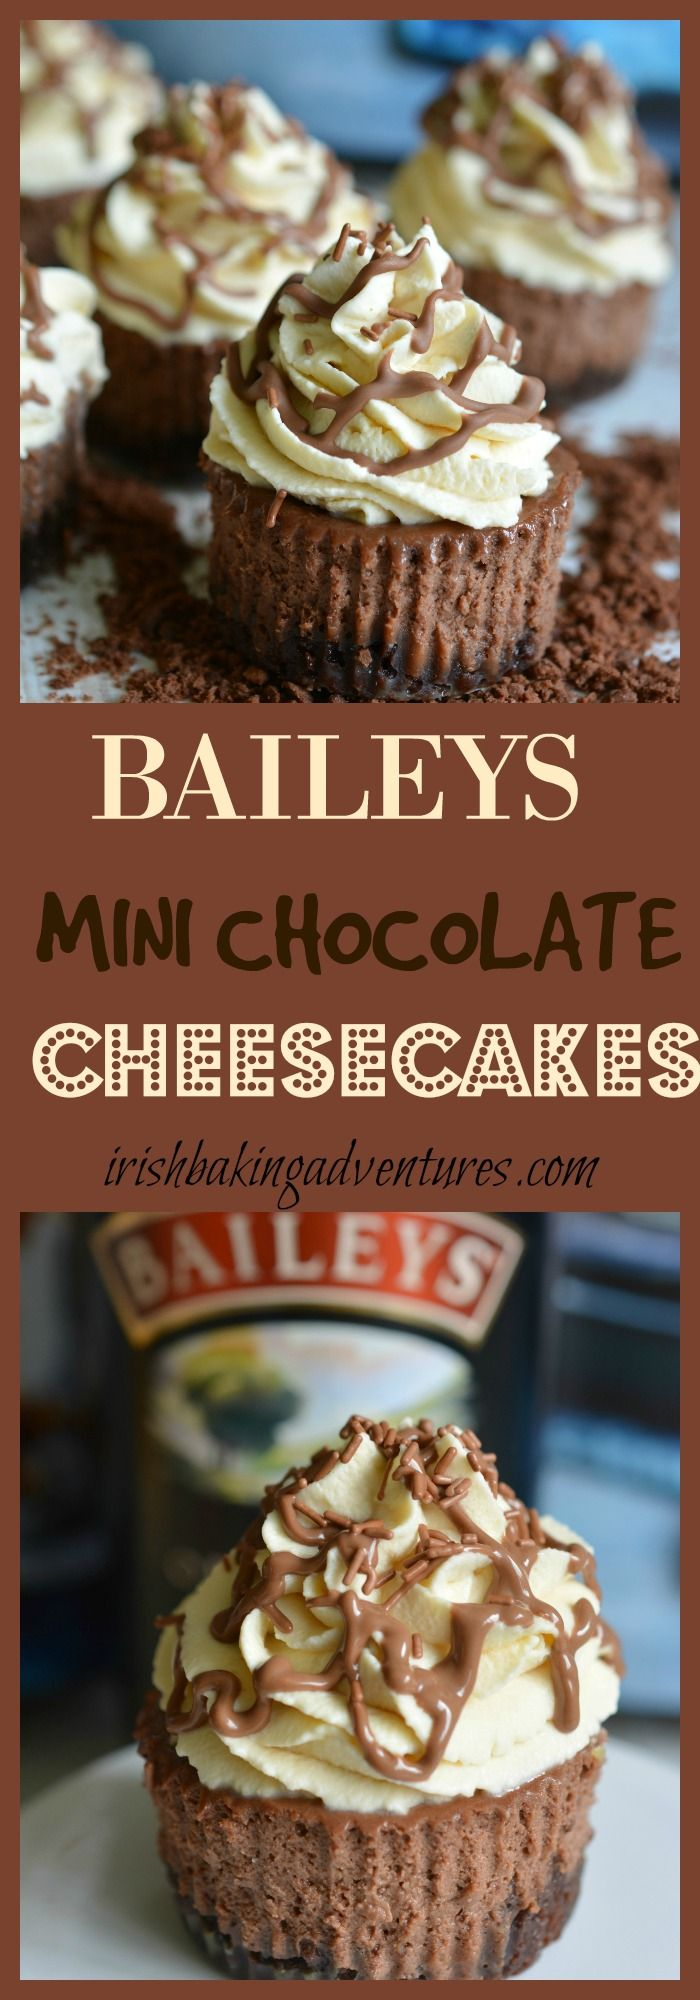 try this Mini Baileys Cheesecake with a bourbon biscuit base, Baileys cheesecake filling & Baileys whipped cream to top things off. BAILEYS HEAVEN